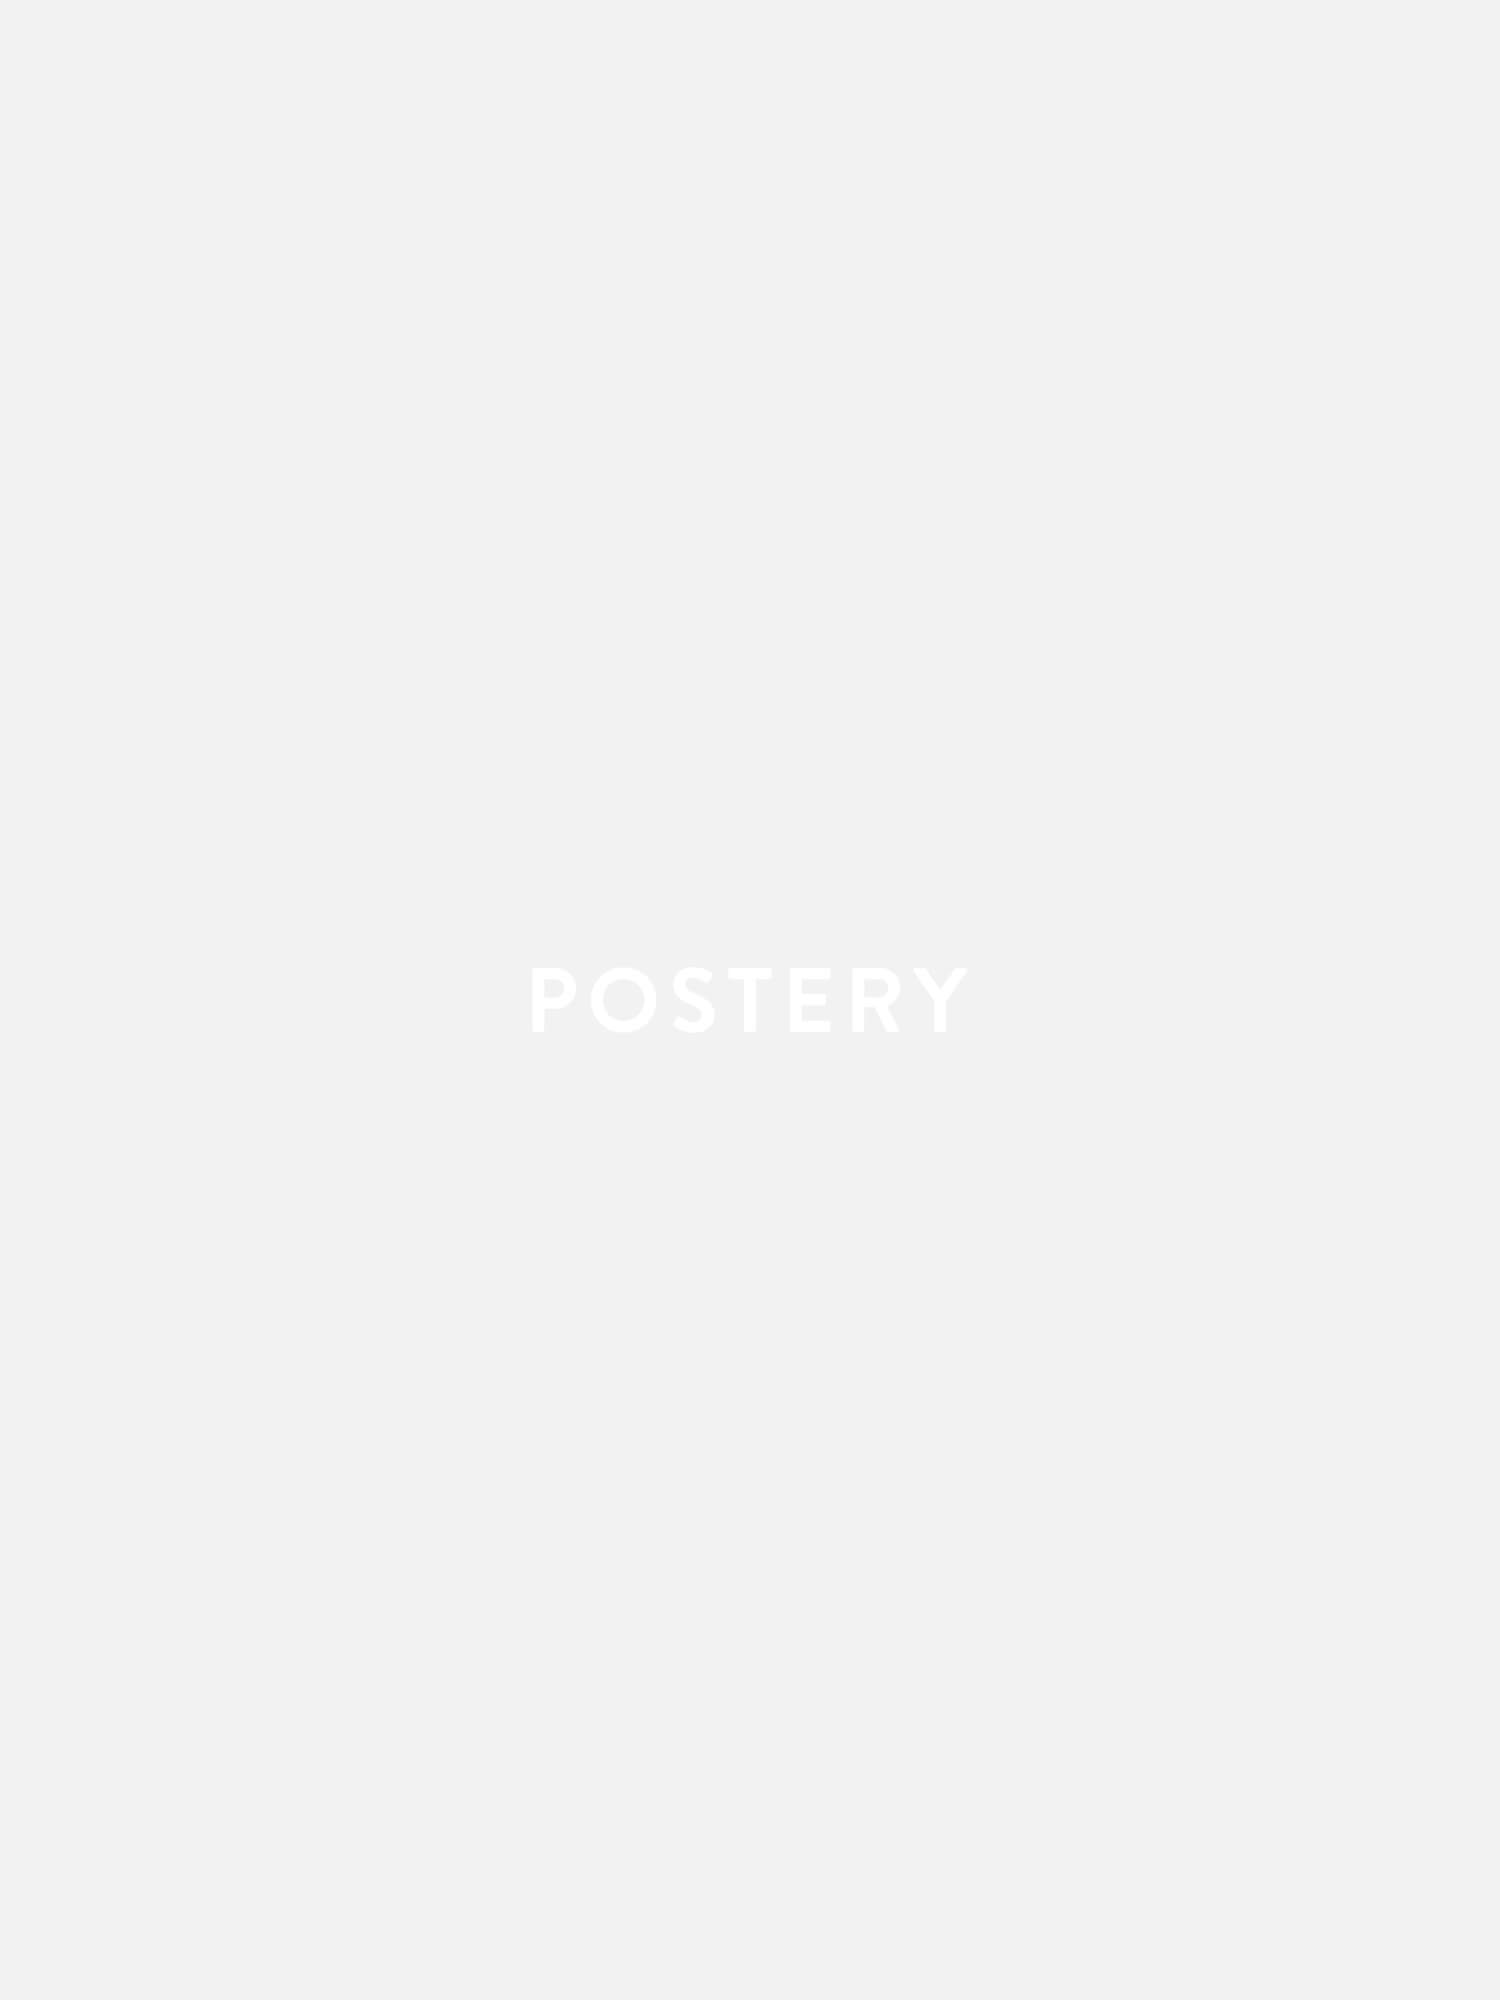 Abstract Ampersand Poster